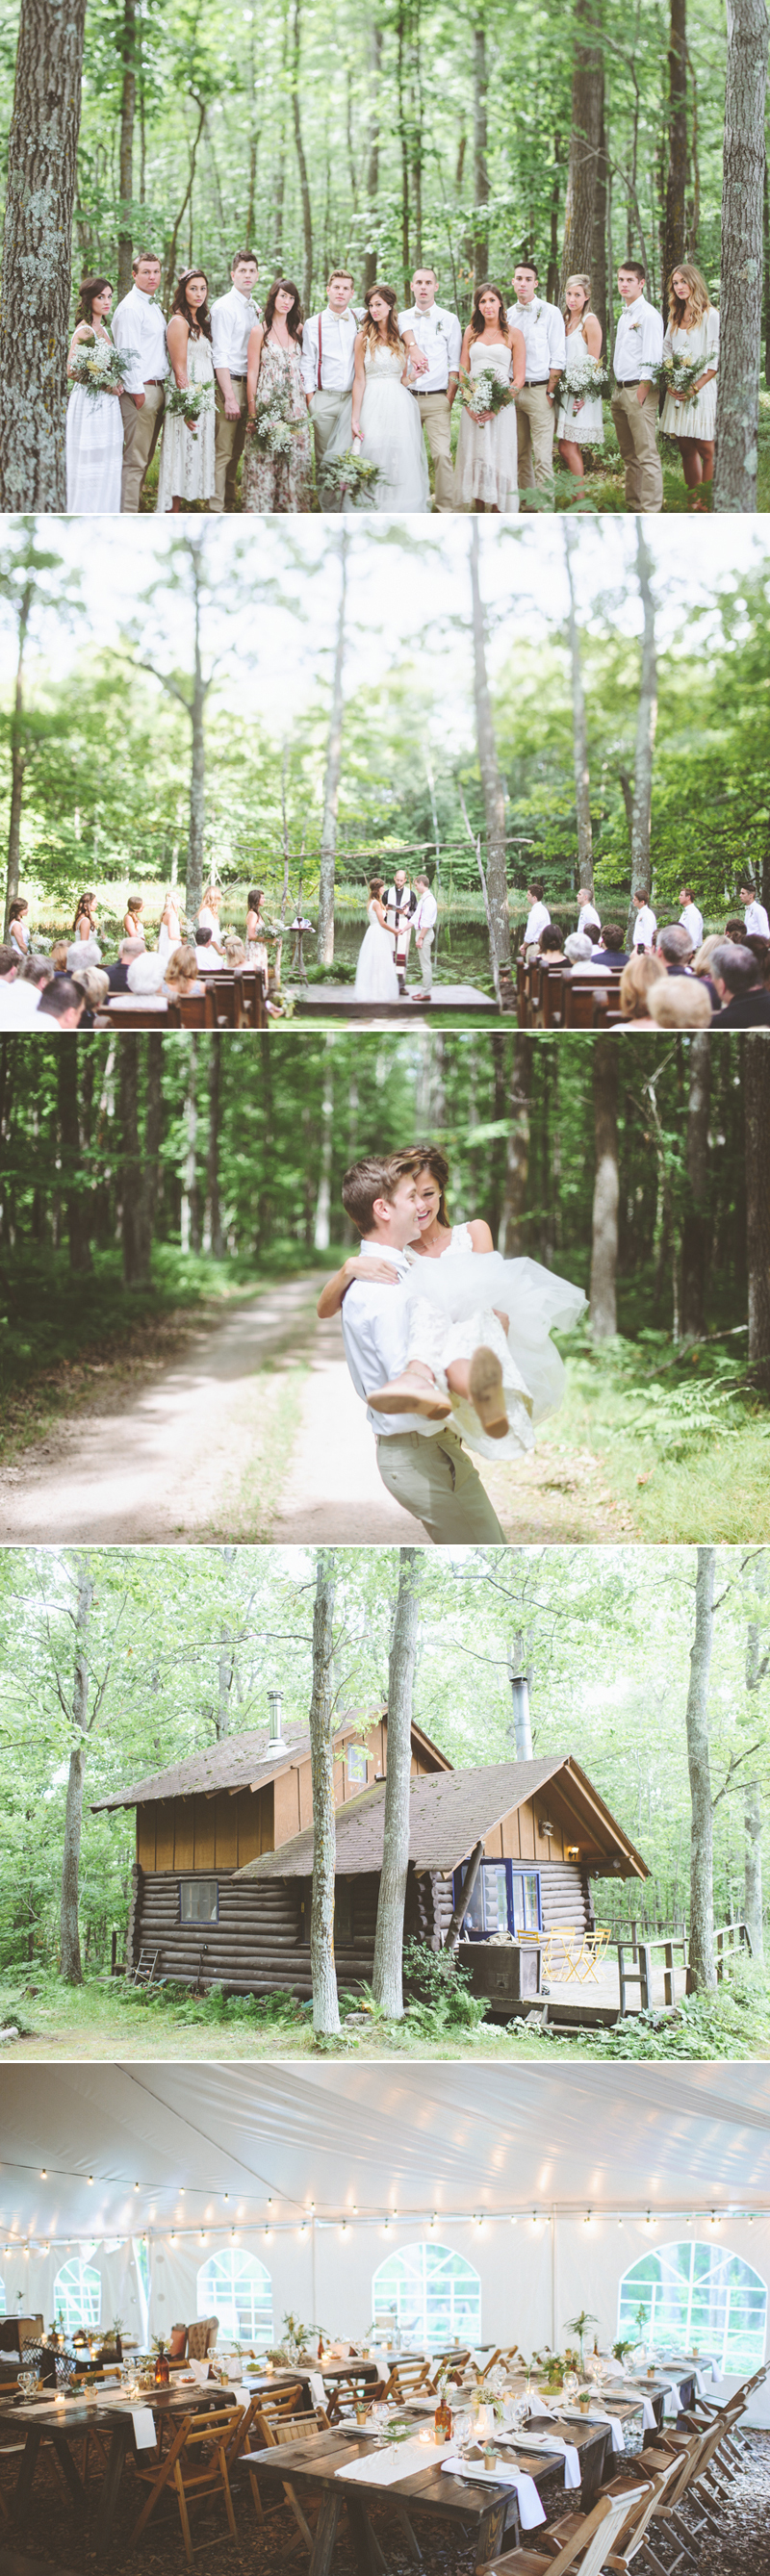 forestwedding02-Lakeside Forest House Wedding (photo by Paper Antler)